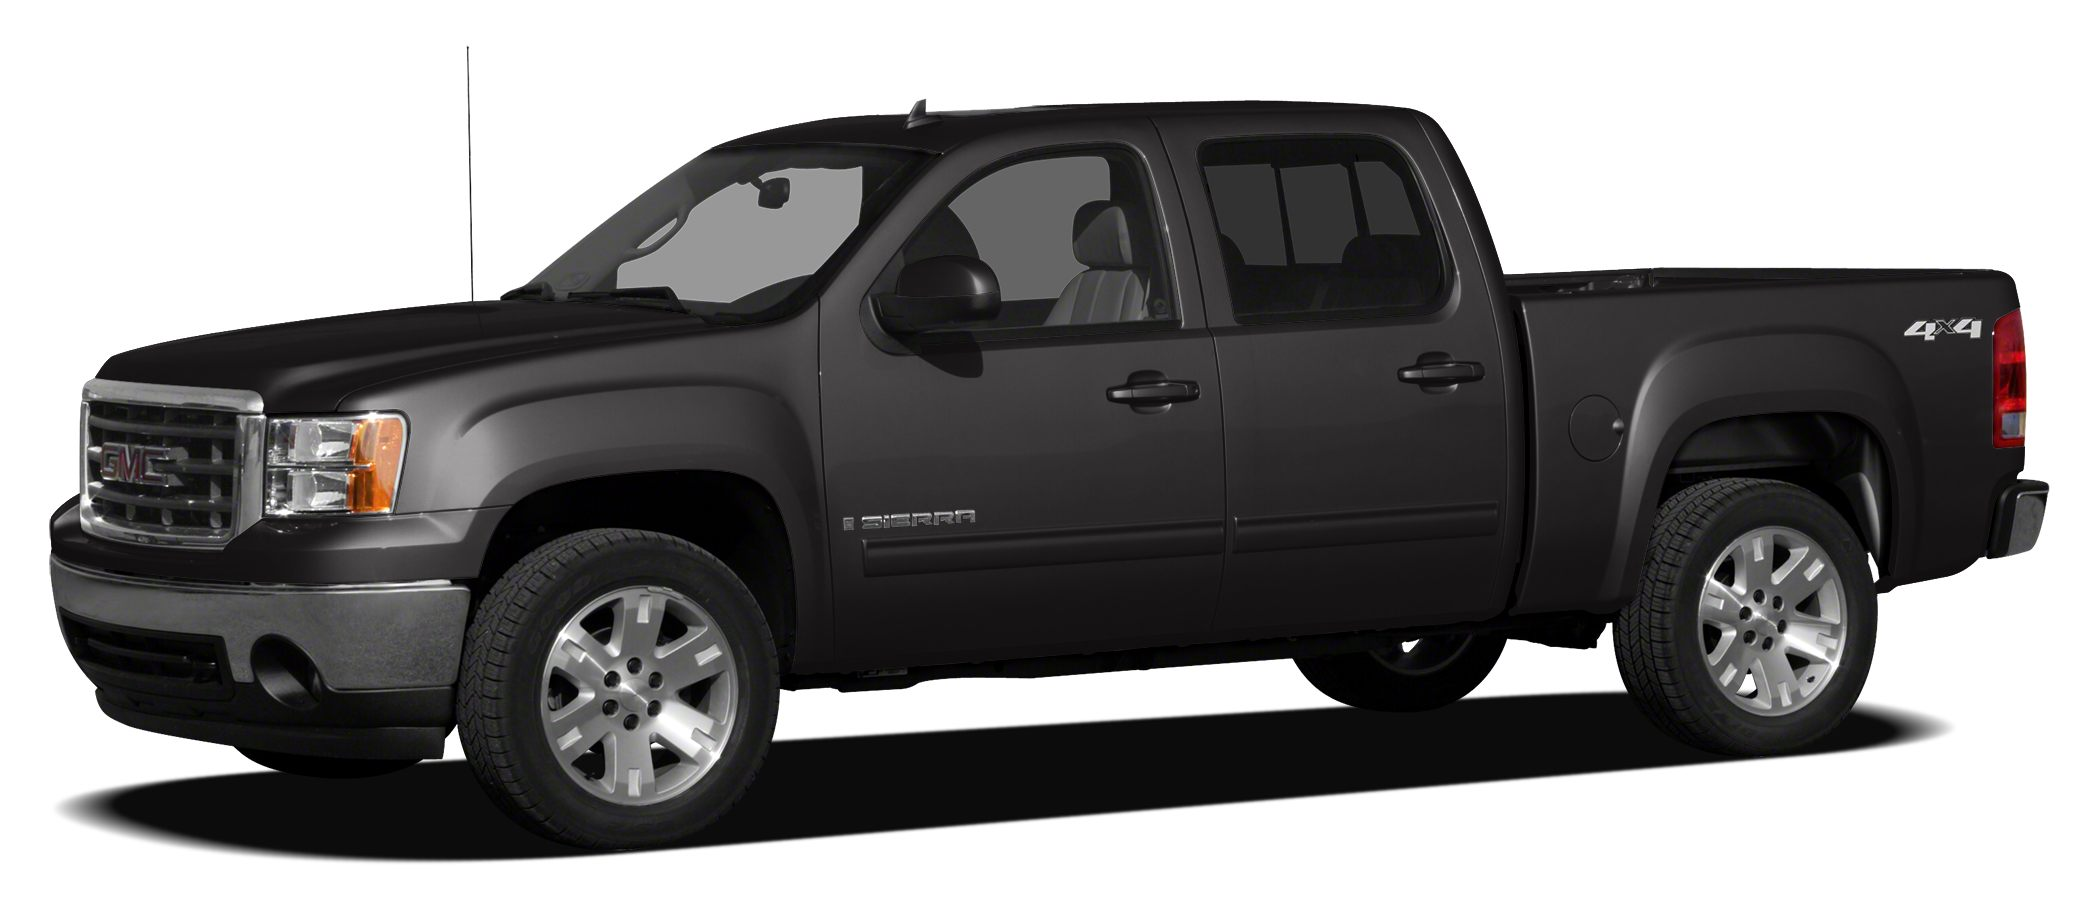 2012 GMC Sierra 1500 SLE DISCLAIMER We are excited to offer this vehicle to you but it is current